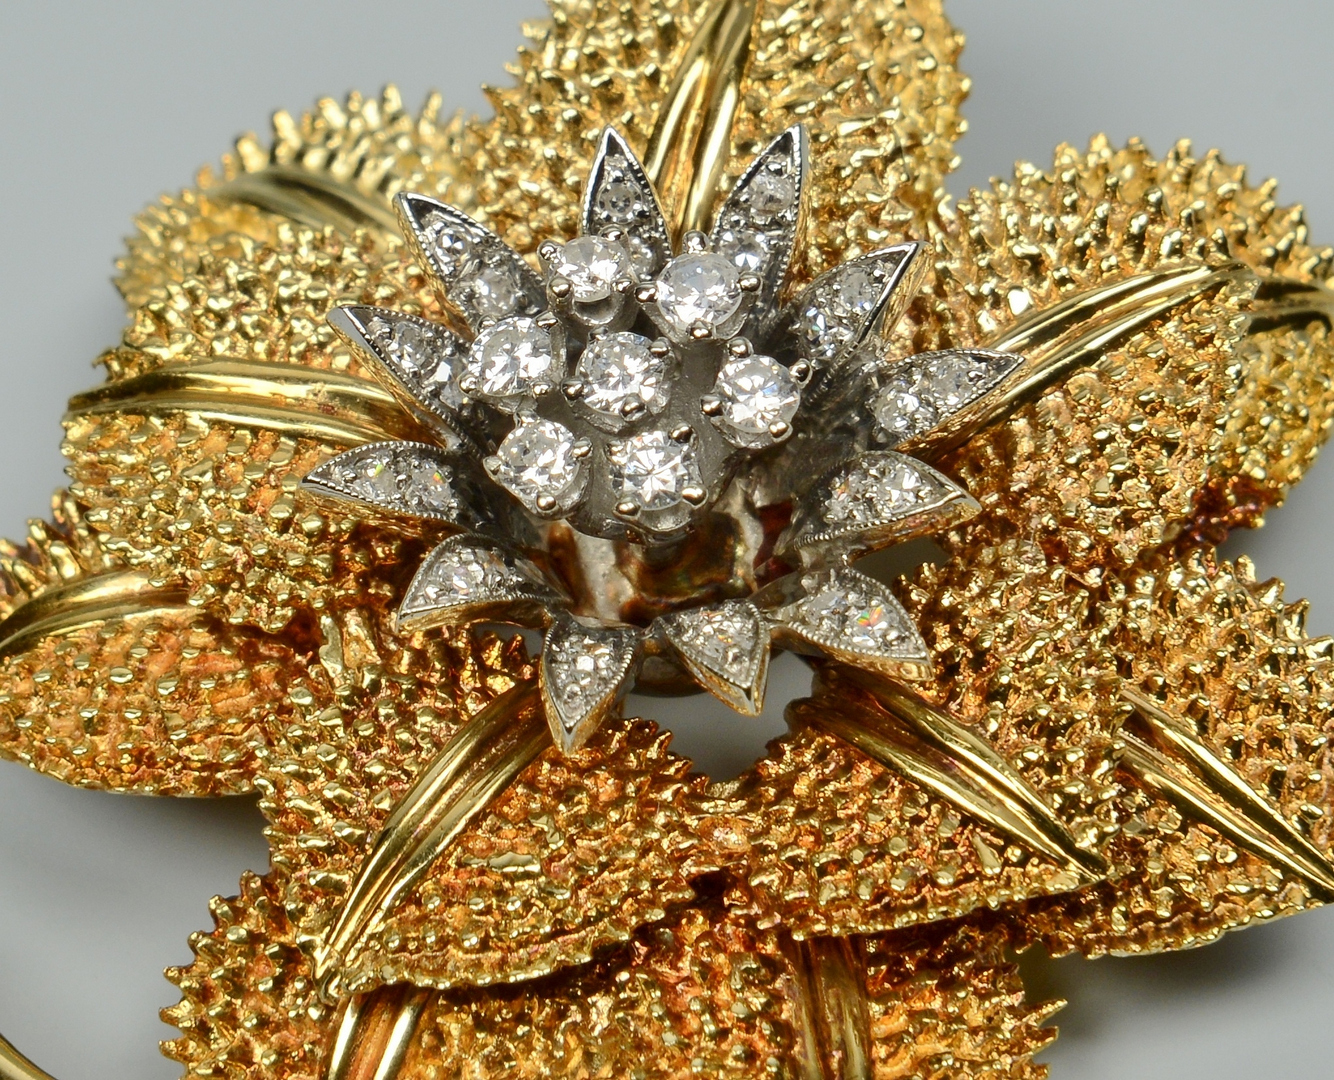 Lot 3088063: 14k Flower pendant/brooch w/ diamonds